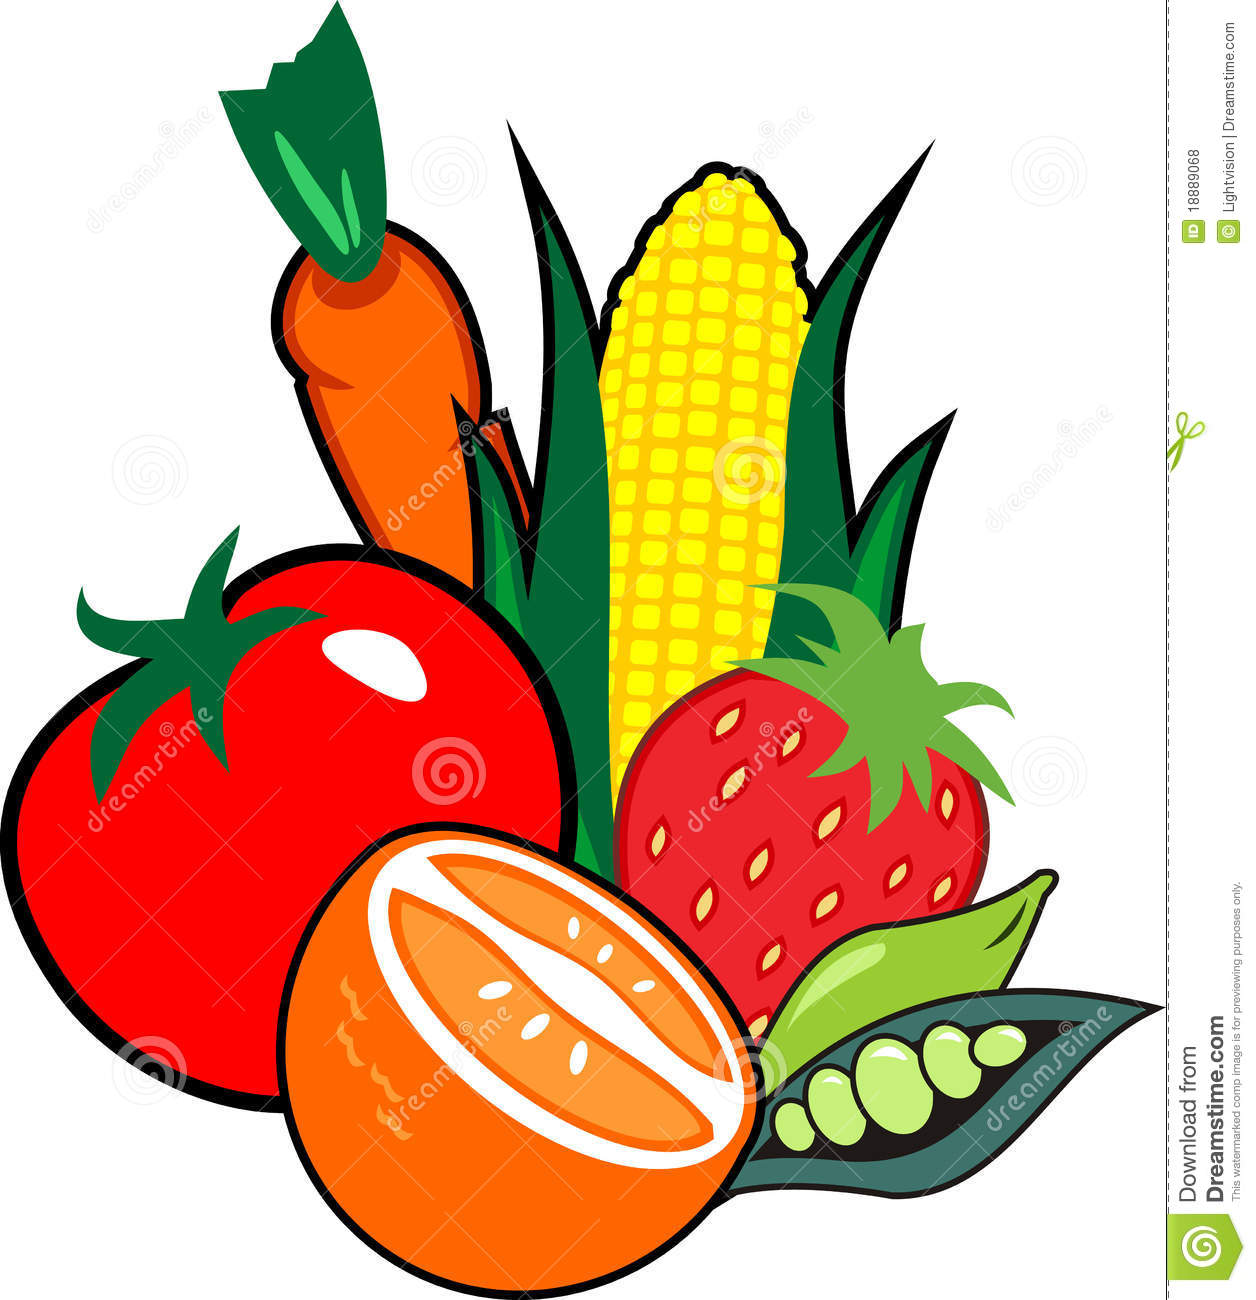 Vegetable clipart patola Vegetable Images Panda Clipart Clipart